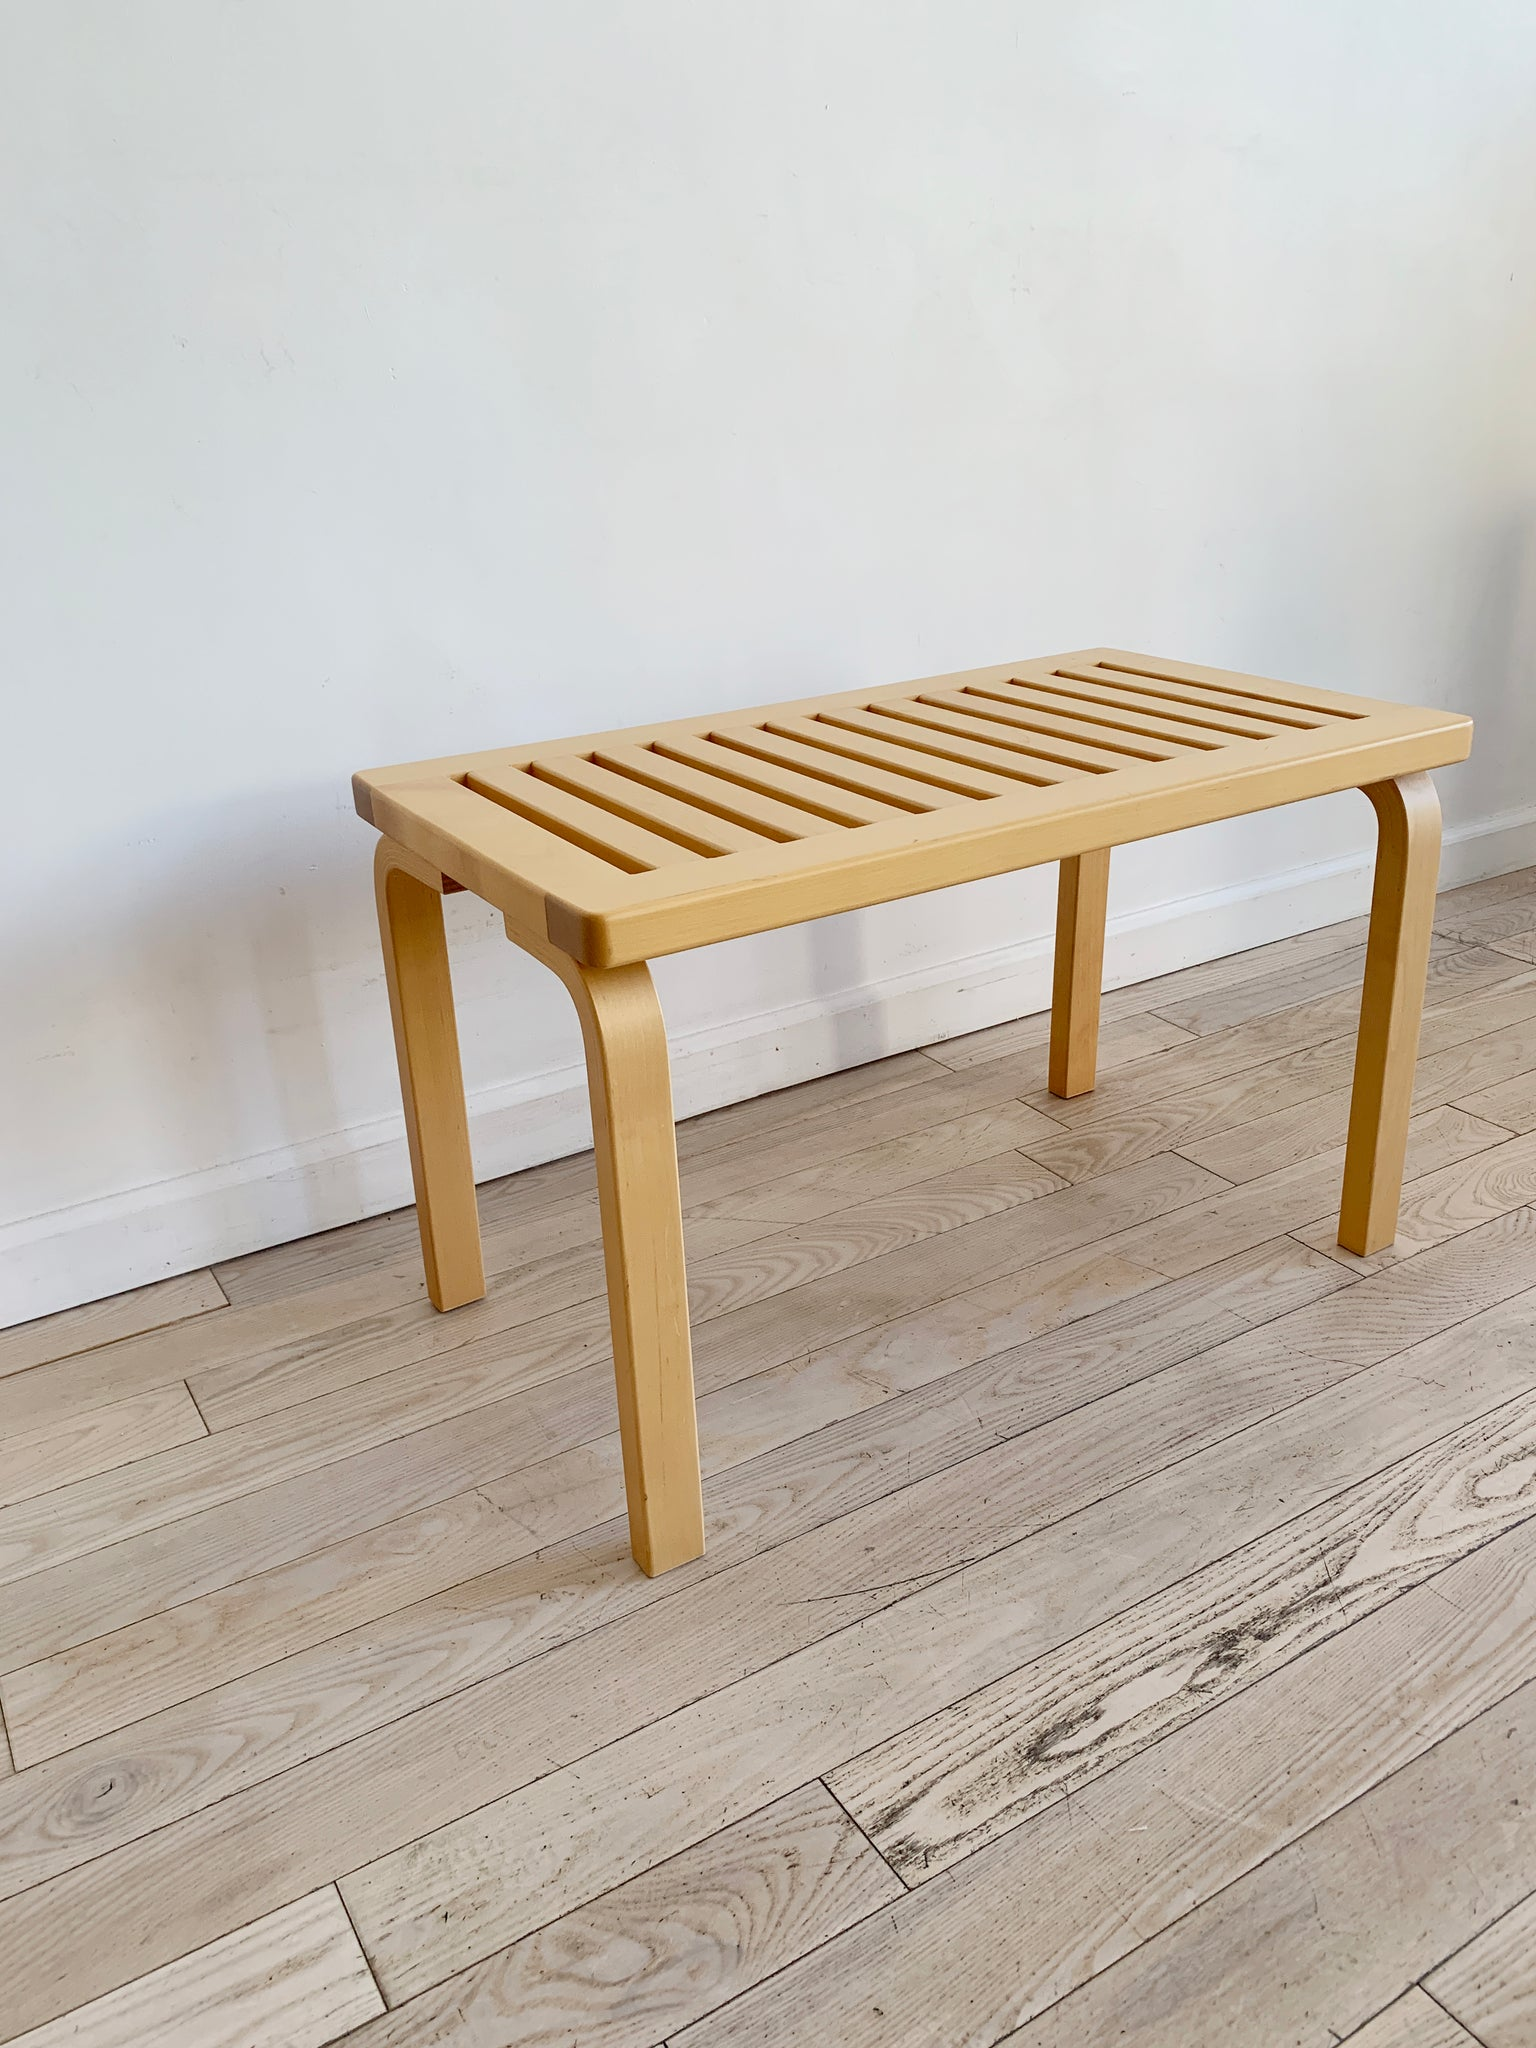 1960s Bench 153 By Alvar Aalto for ICF, Finland